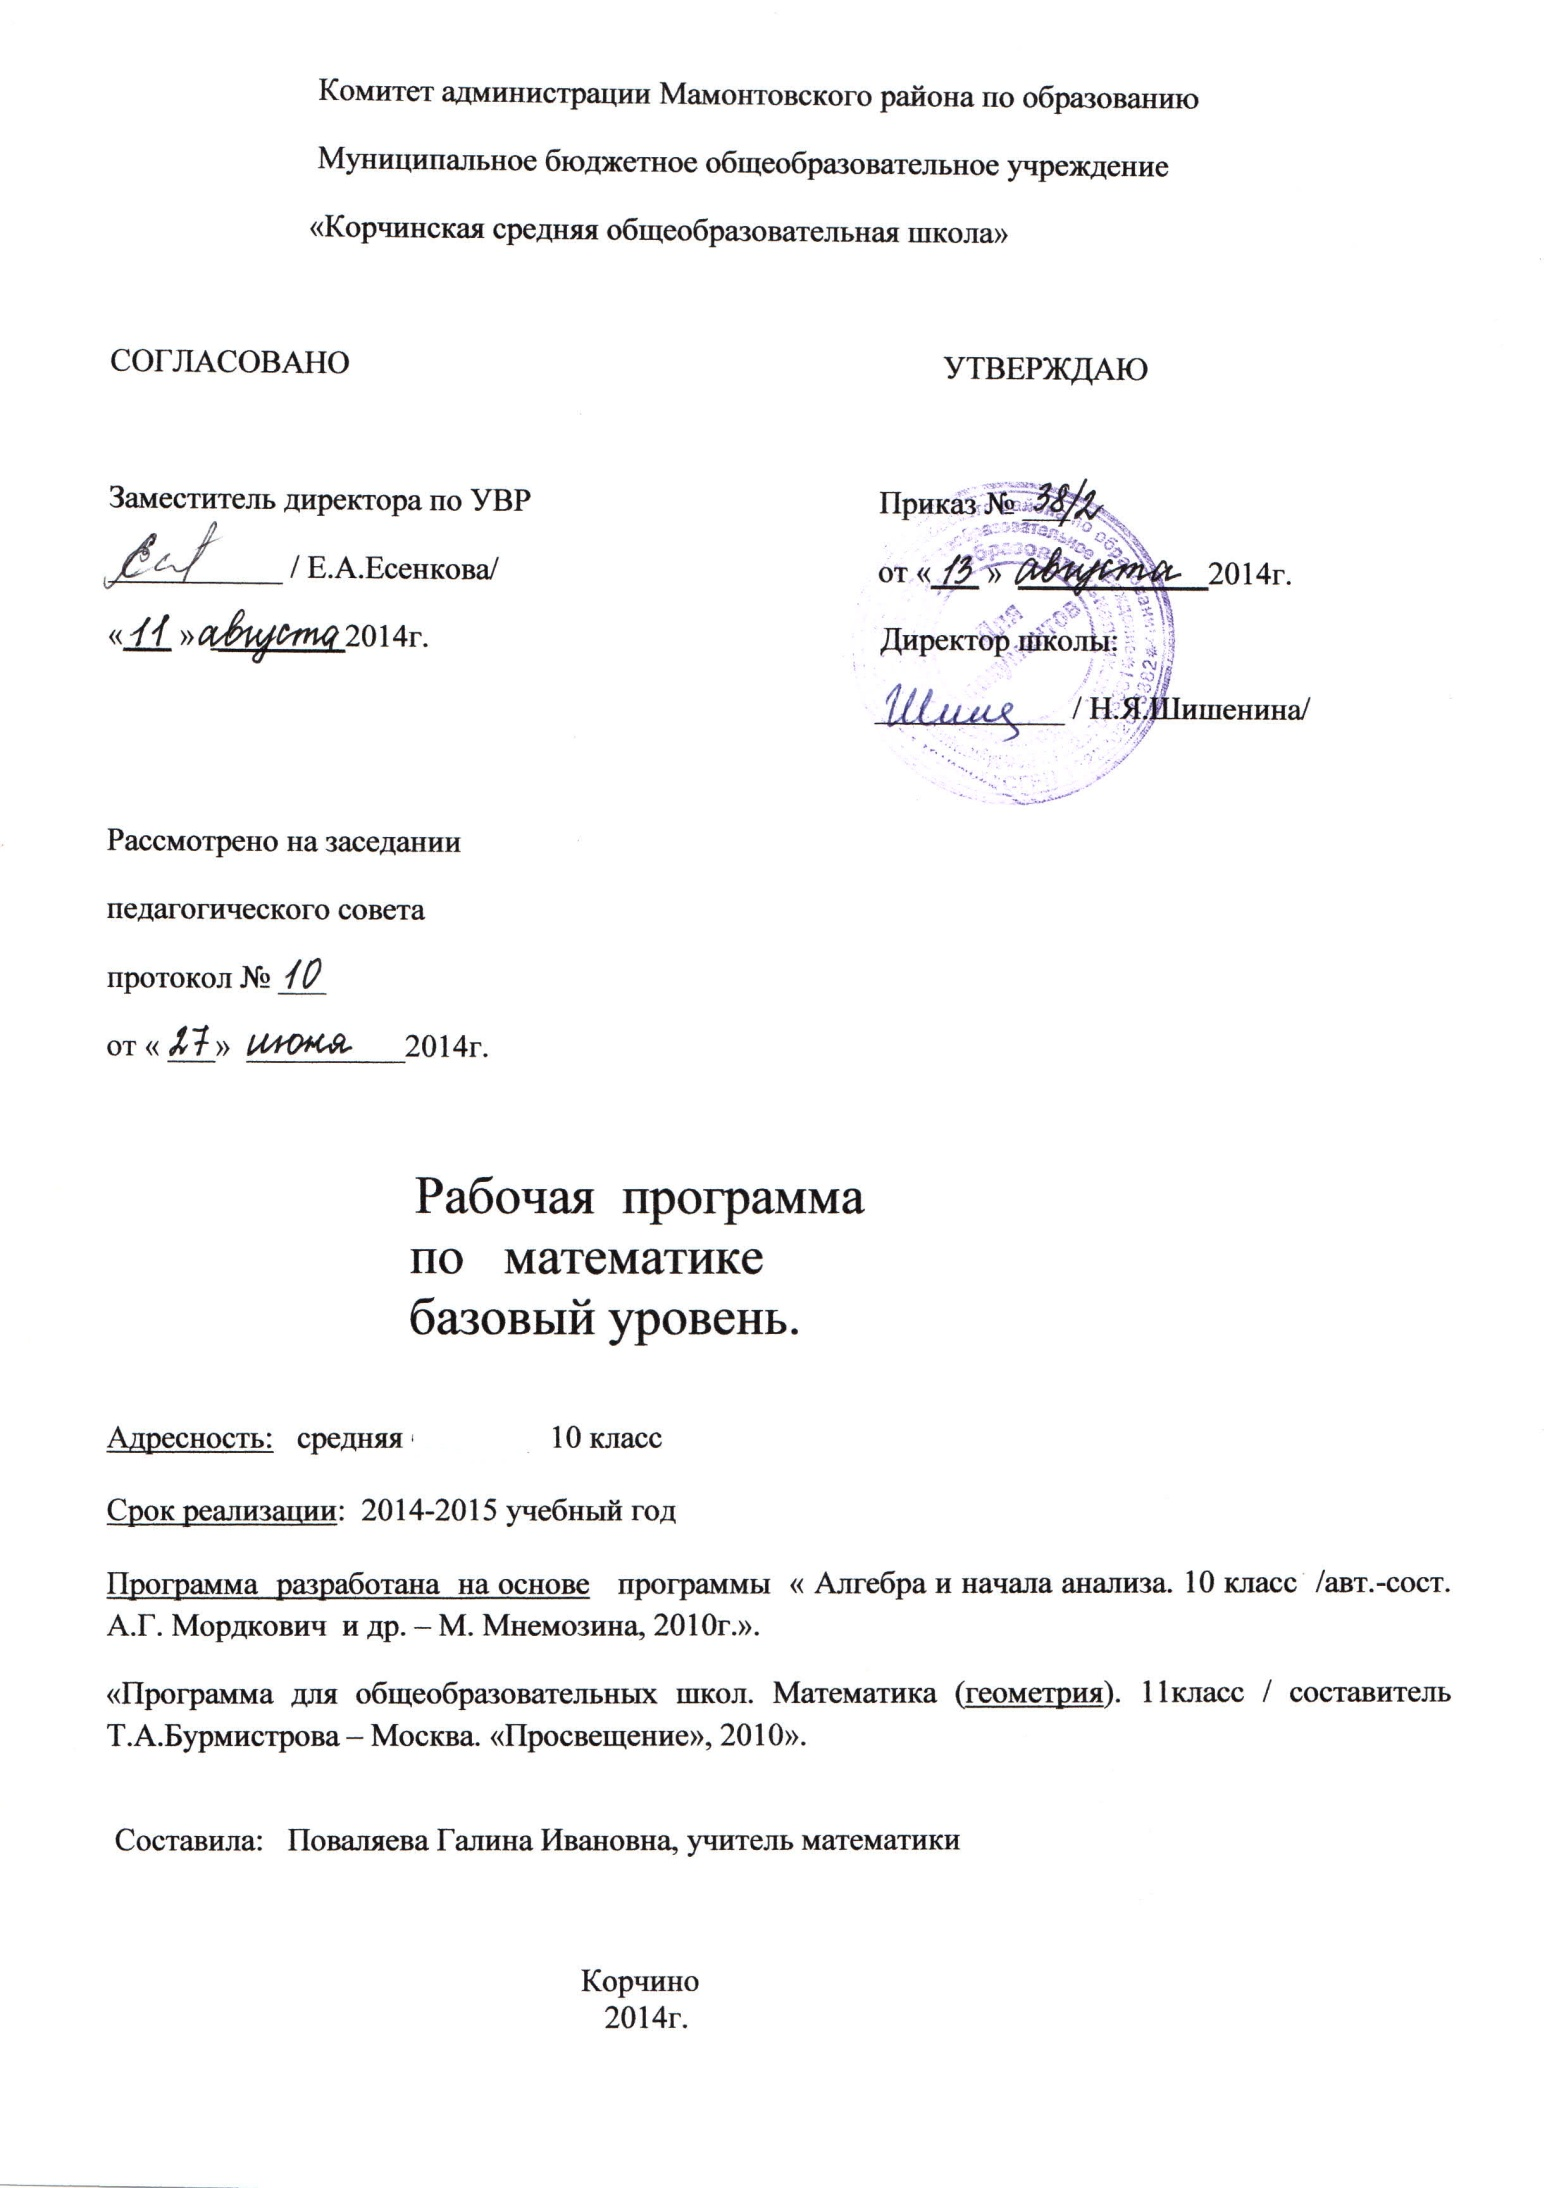 C:\Documents and Settings\Admin\Рабочий стол\13-OKT-2014\140033.JPG